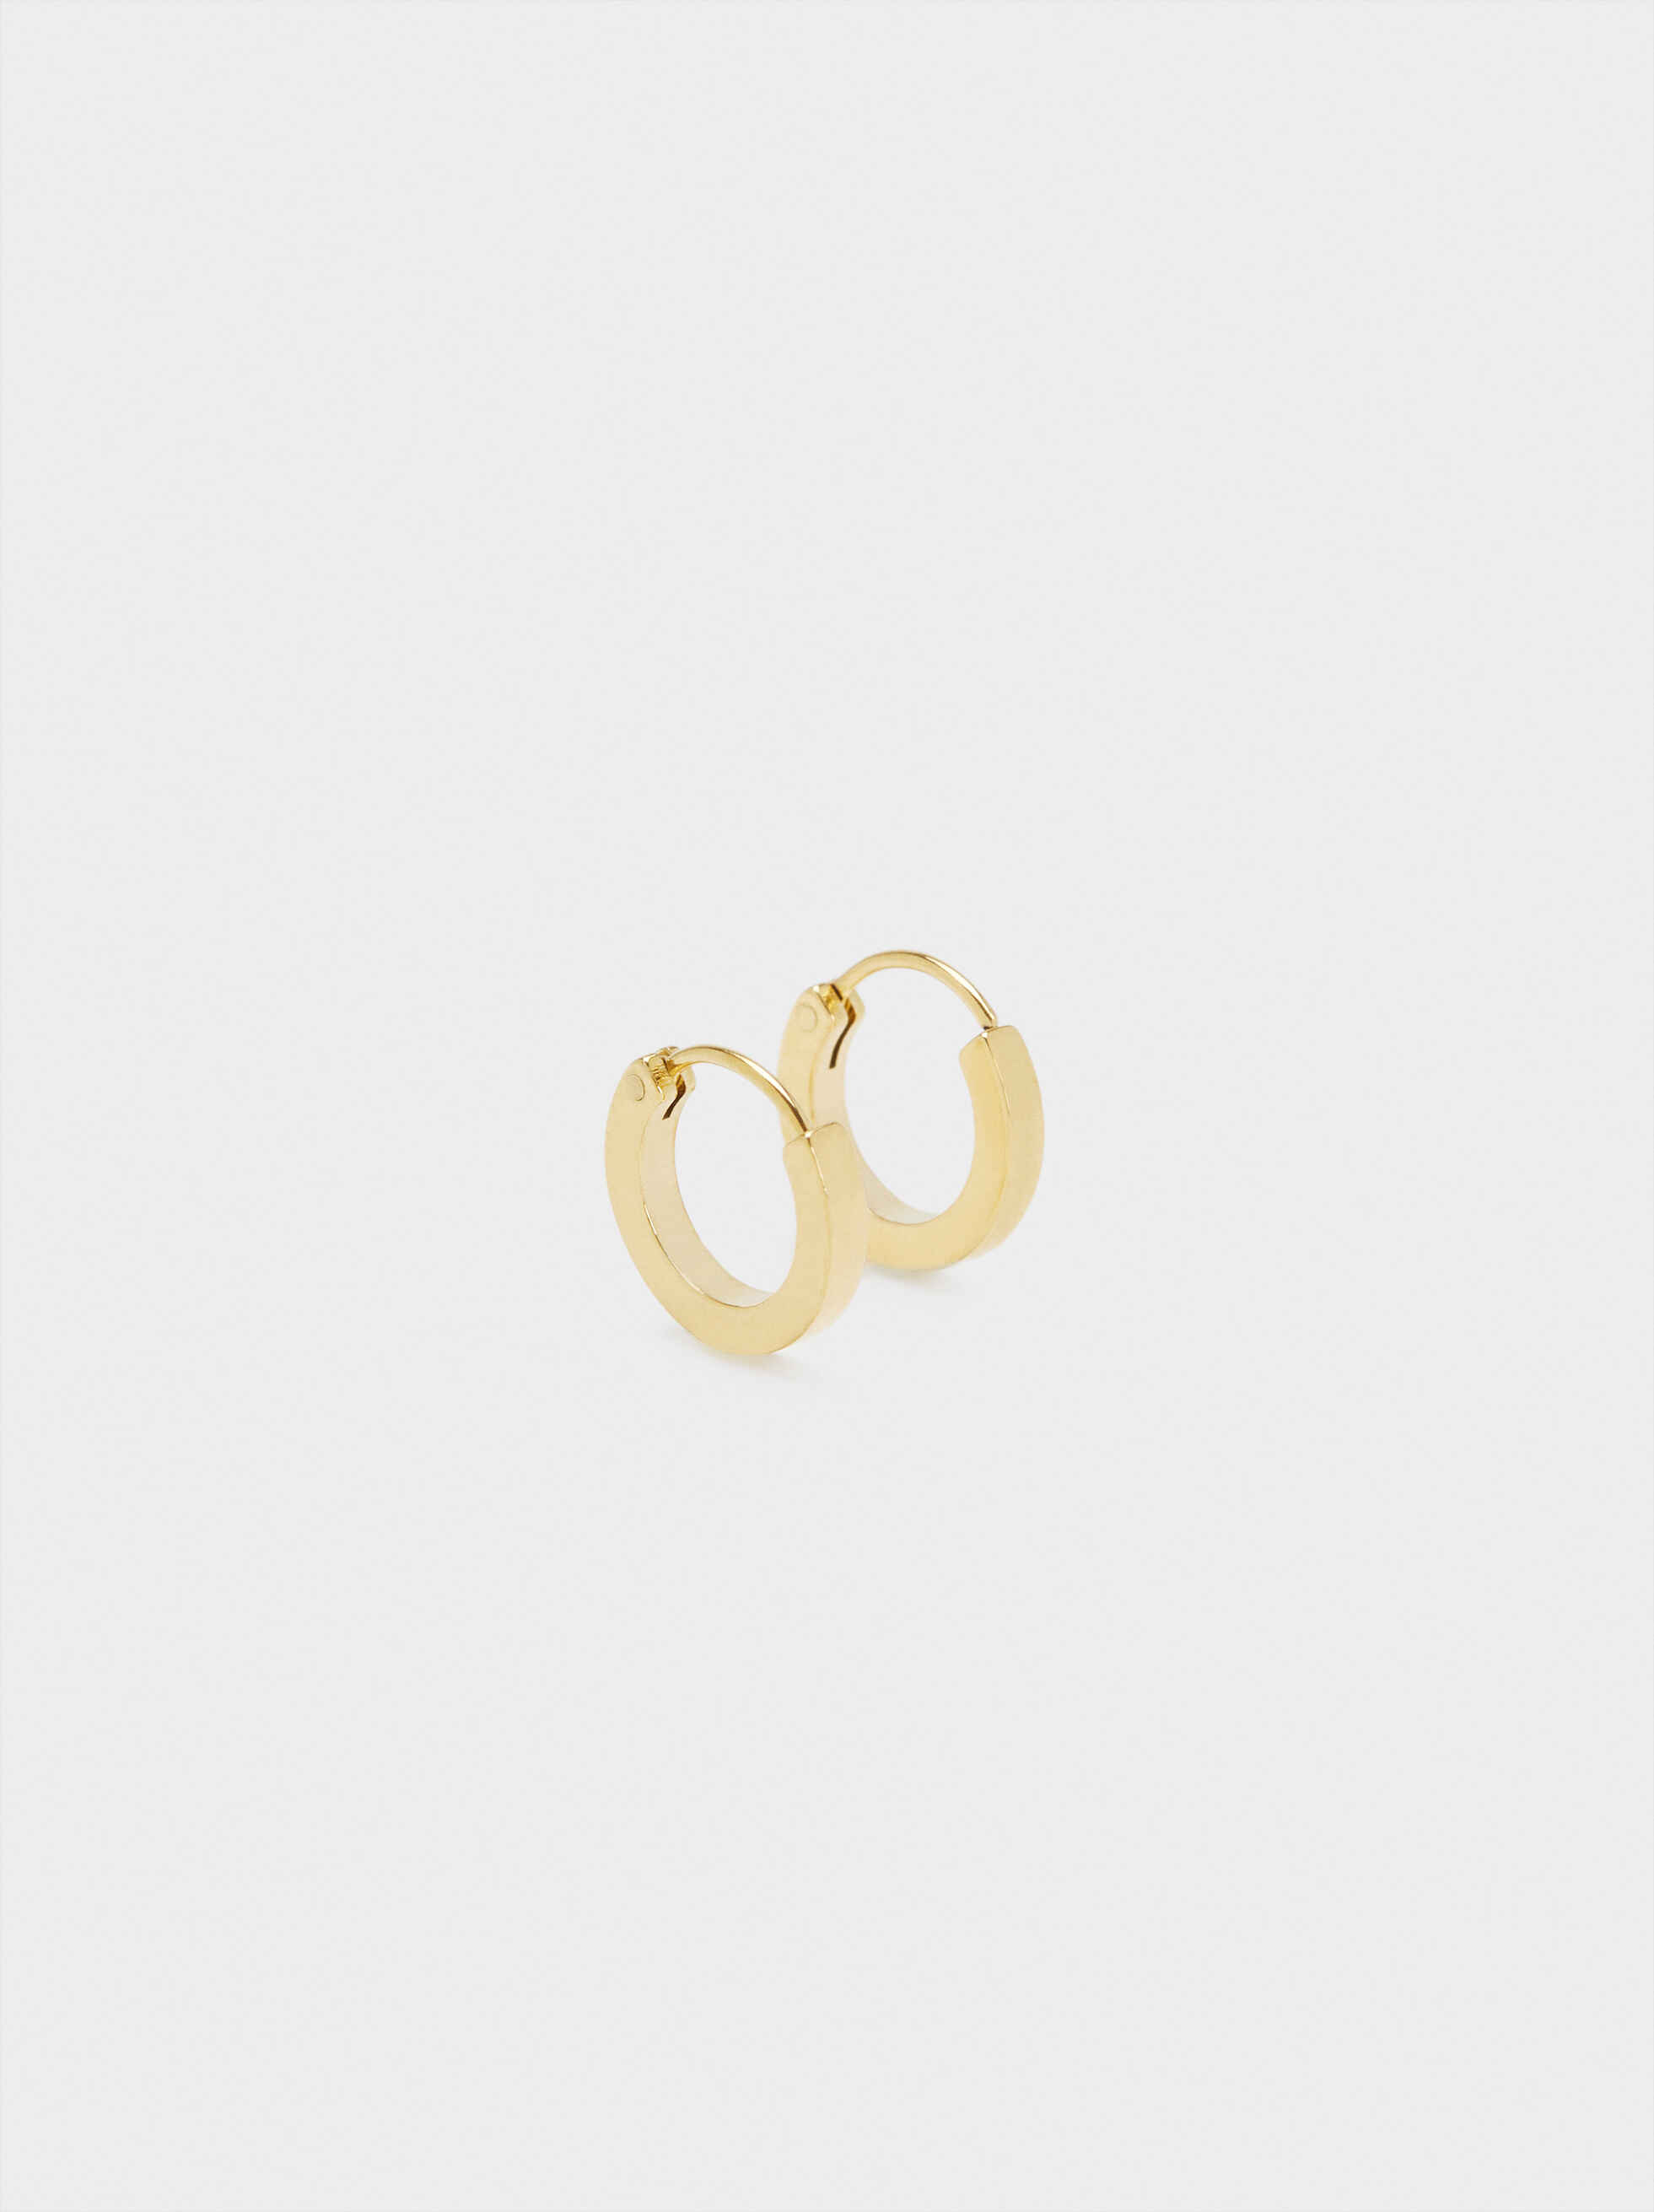 Small Gold Stainless Steel Hoop Earrings, , hi-res